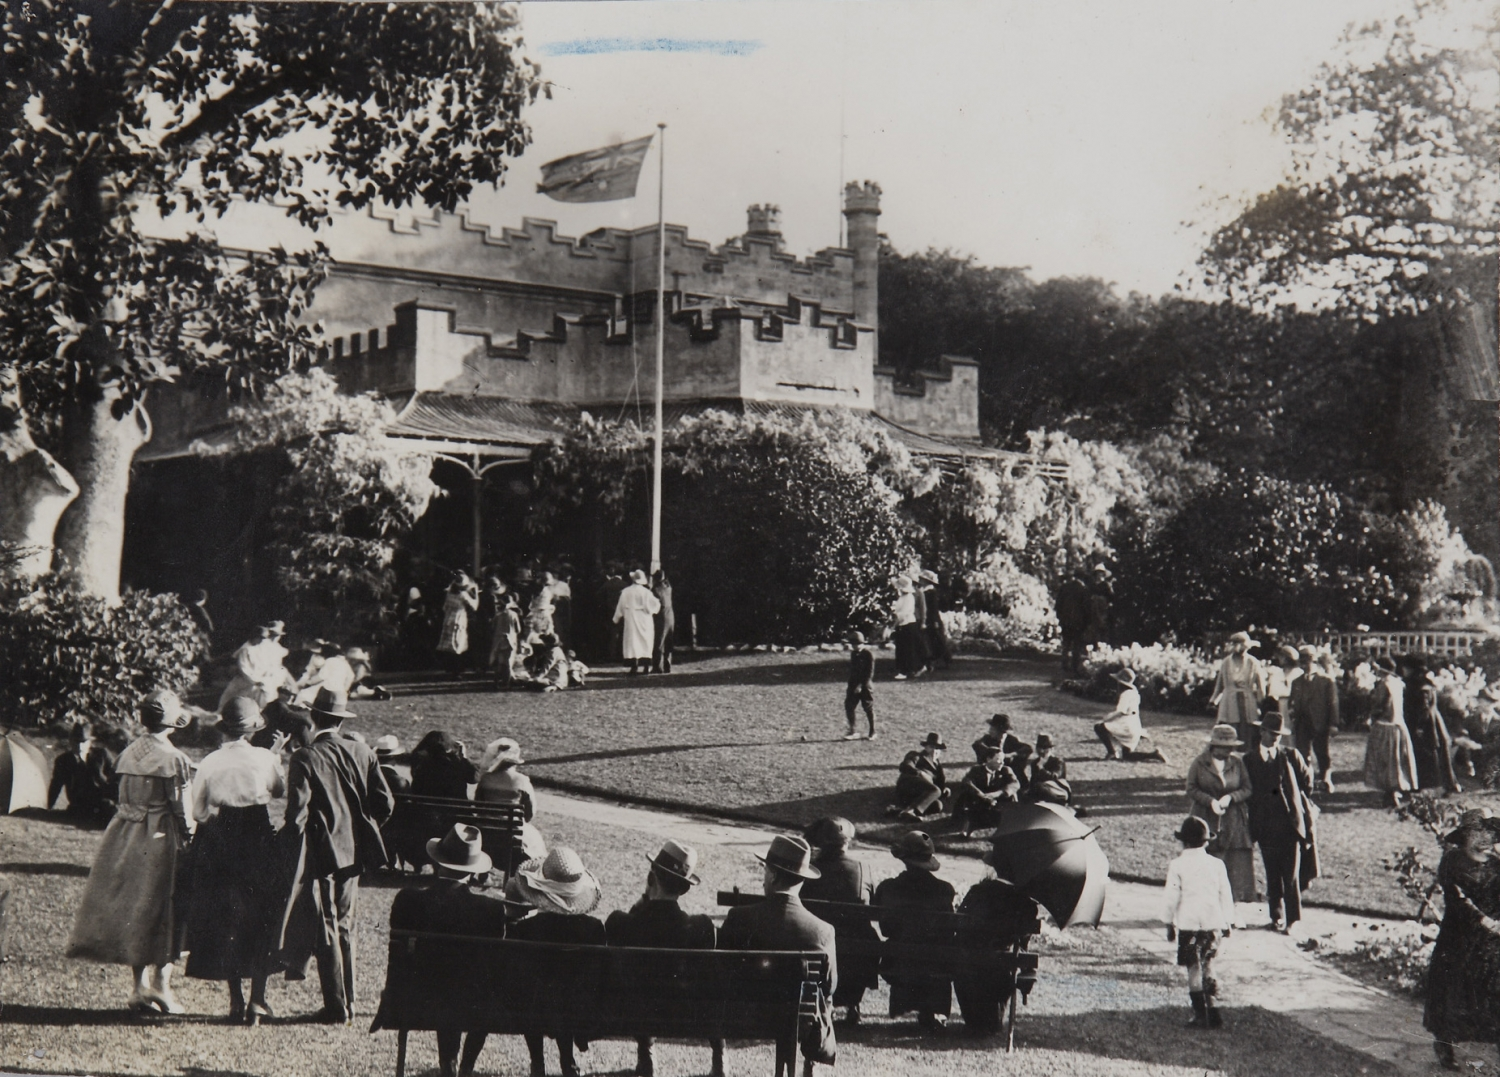 Black and white photograph of crowds at Vaucluse House during wisteria season